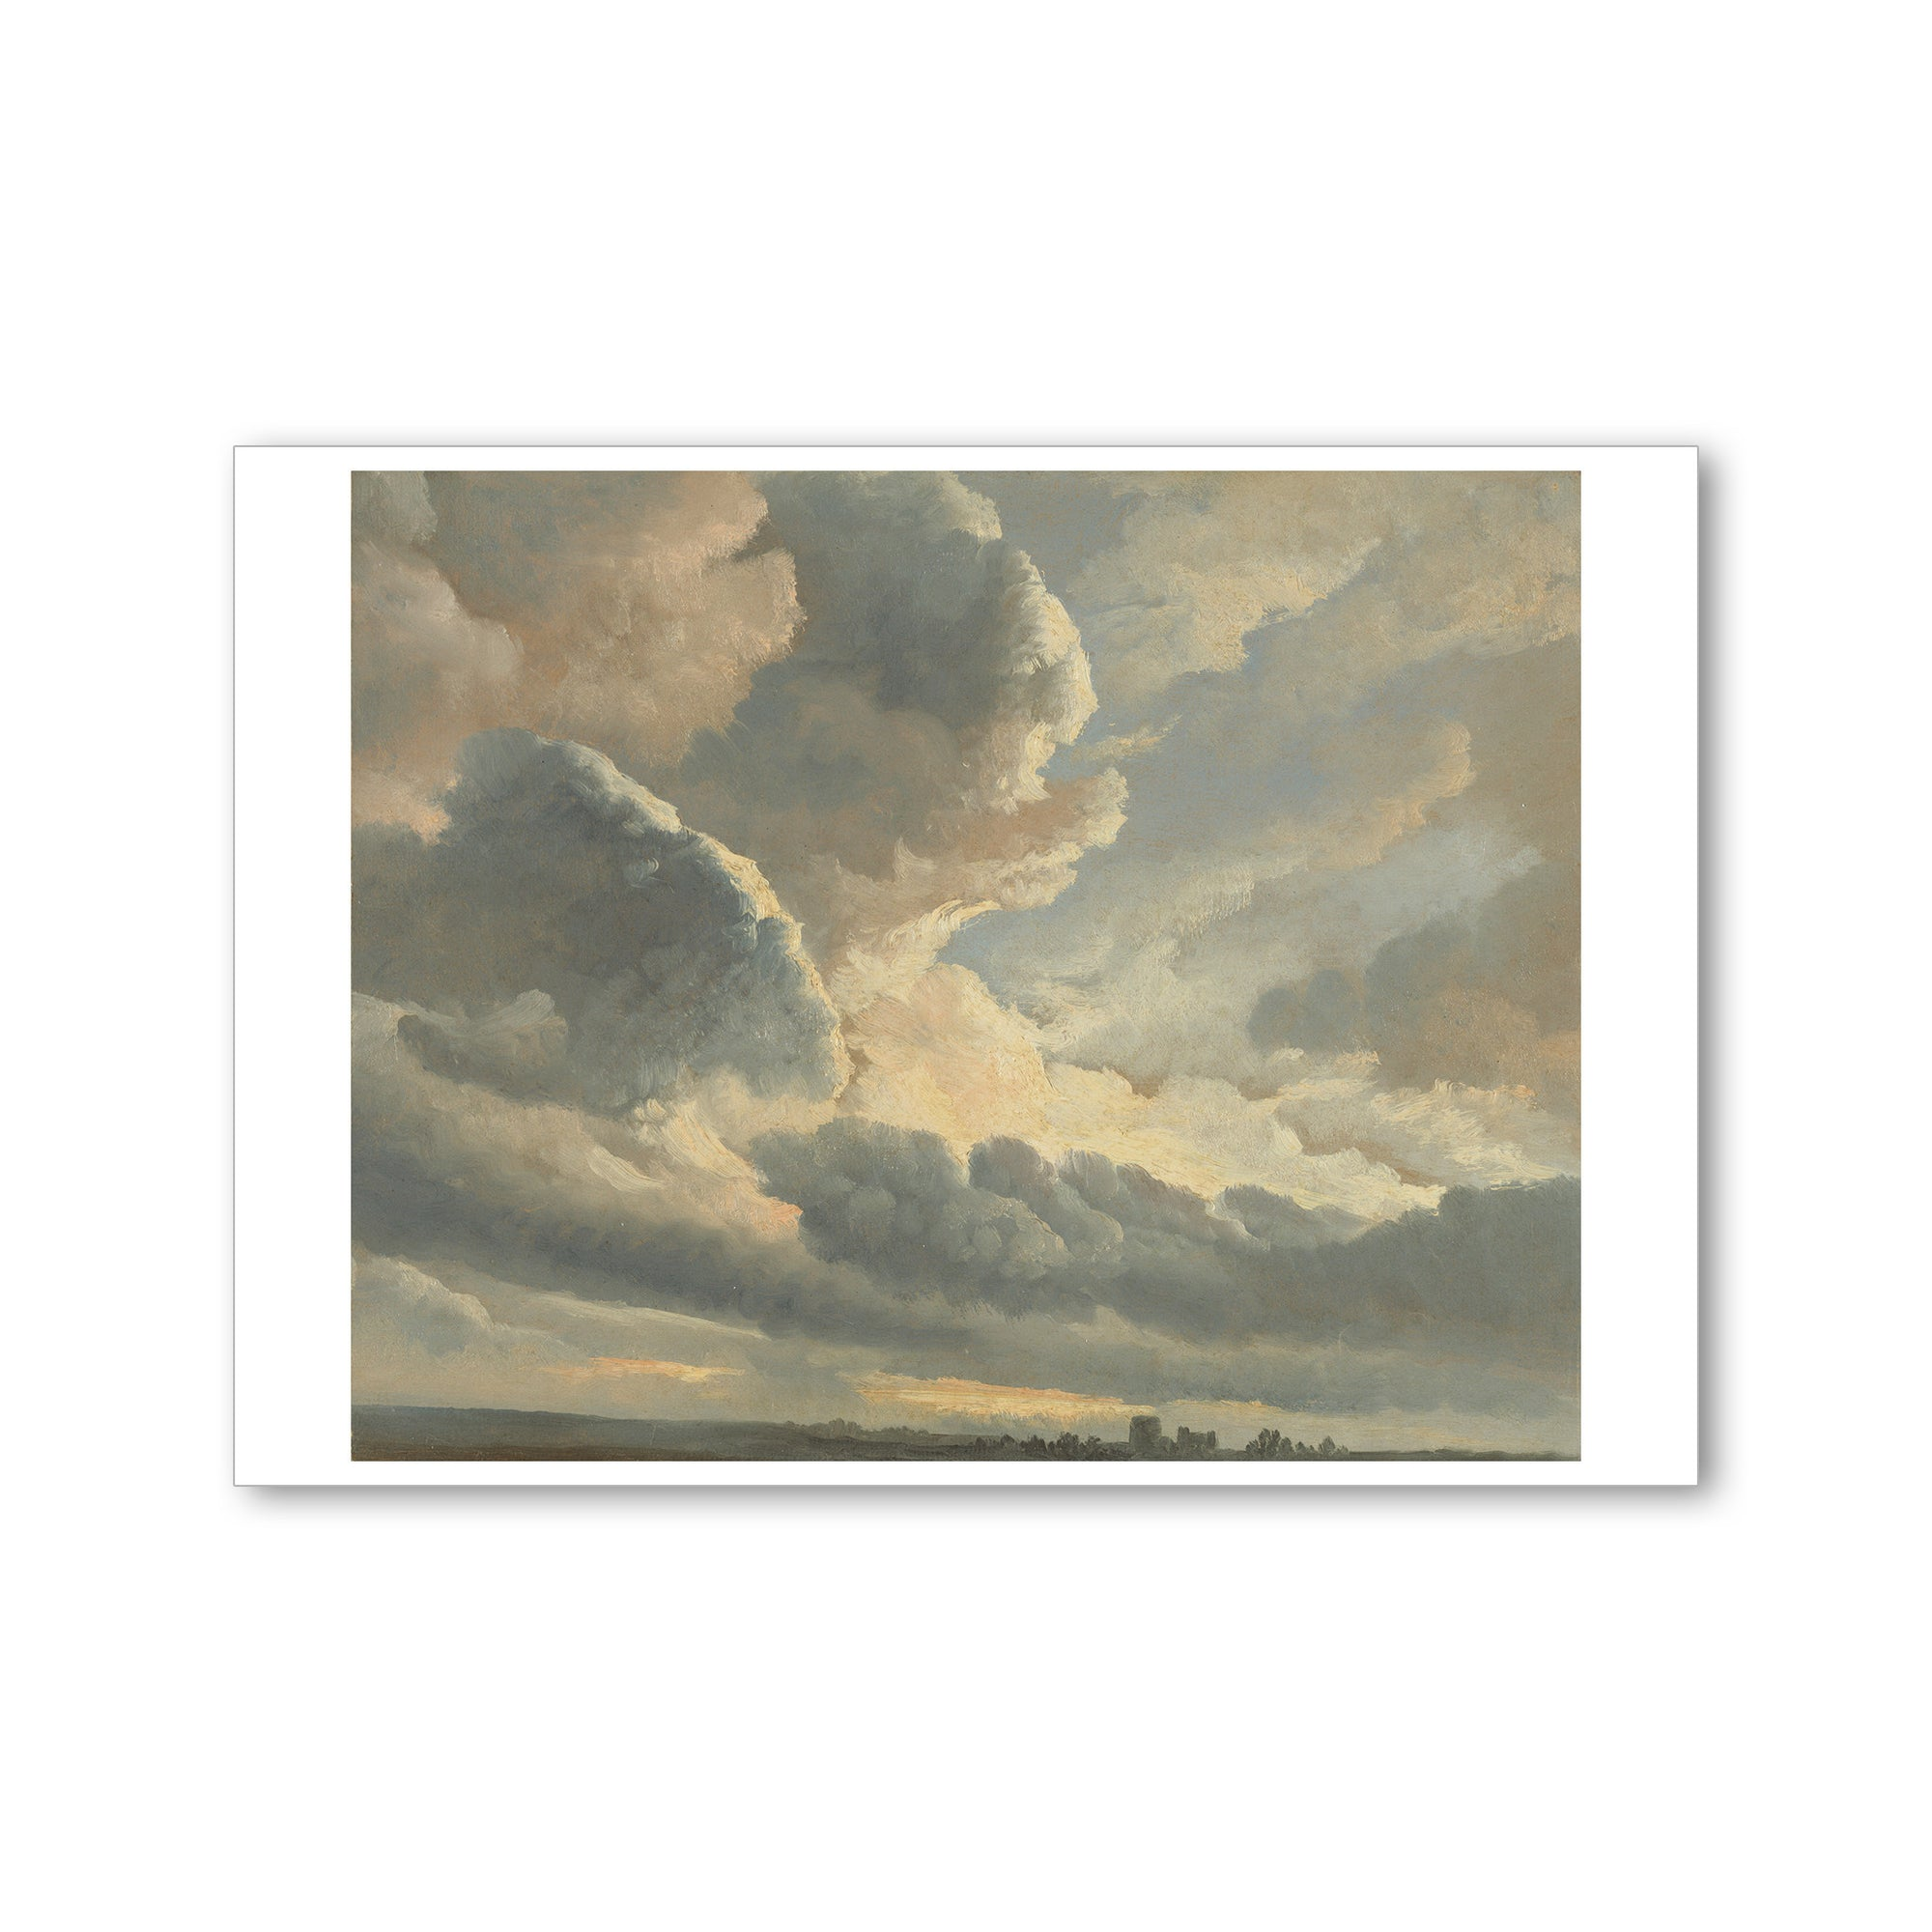 Denis, Study of Clouds with a Sunset near Rome Postcard | Getty Store